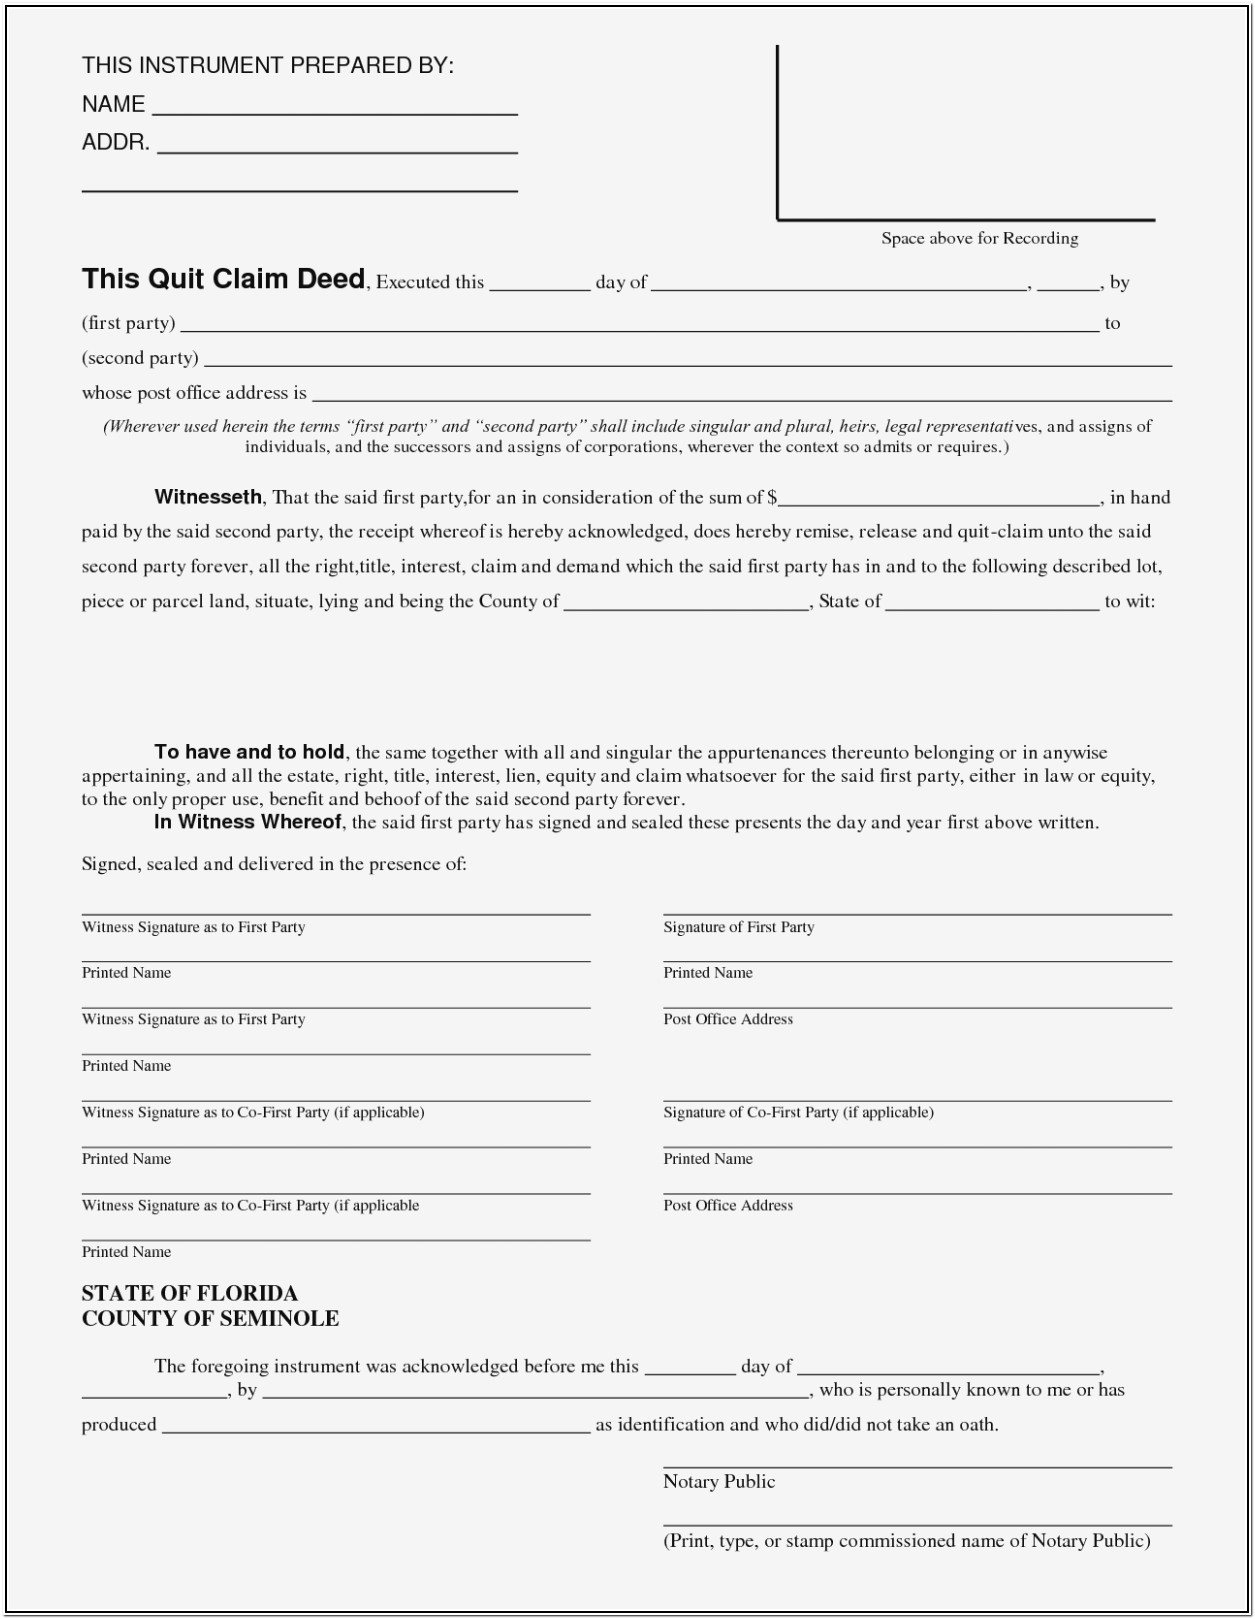 Florida Quitclaim Deed Form For Timeshare Archives – Form Within Quit Claim Deed Form Florida